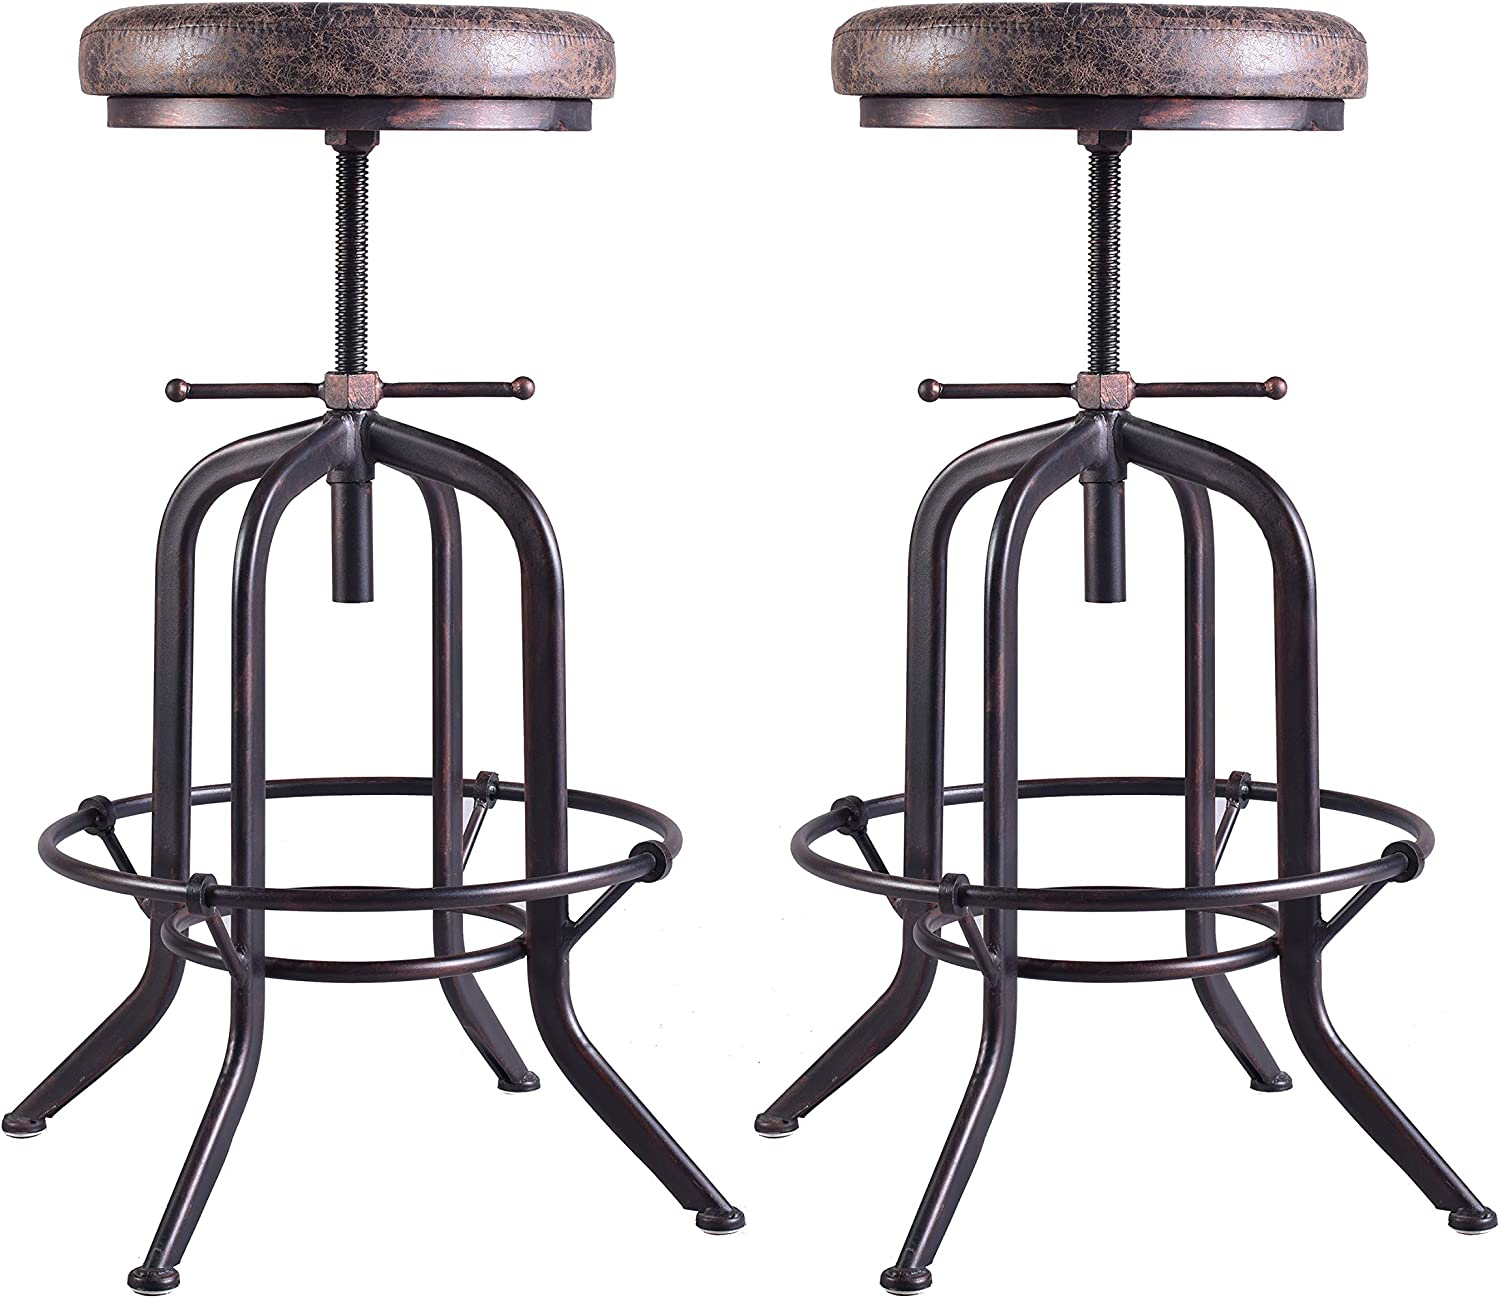 LOKKHAN Set of 2 Industrial Bar Stool-Adjustable Swivel Vintage Pu Leather Bar Stool-Rustic Bar Stool with Cushion-Cast Iron Stool-Coffee Kitchen Stool-Extra Tall Pub Height 29-35 Inch,Fully Welded